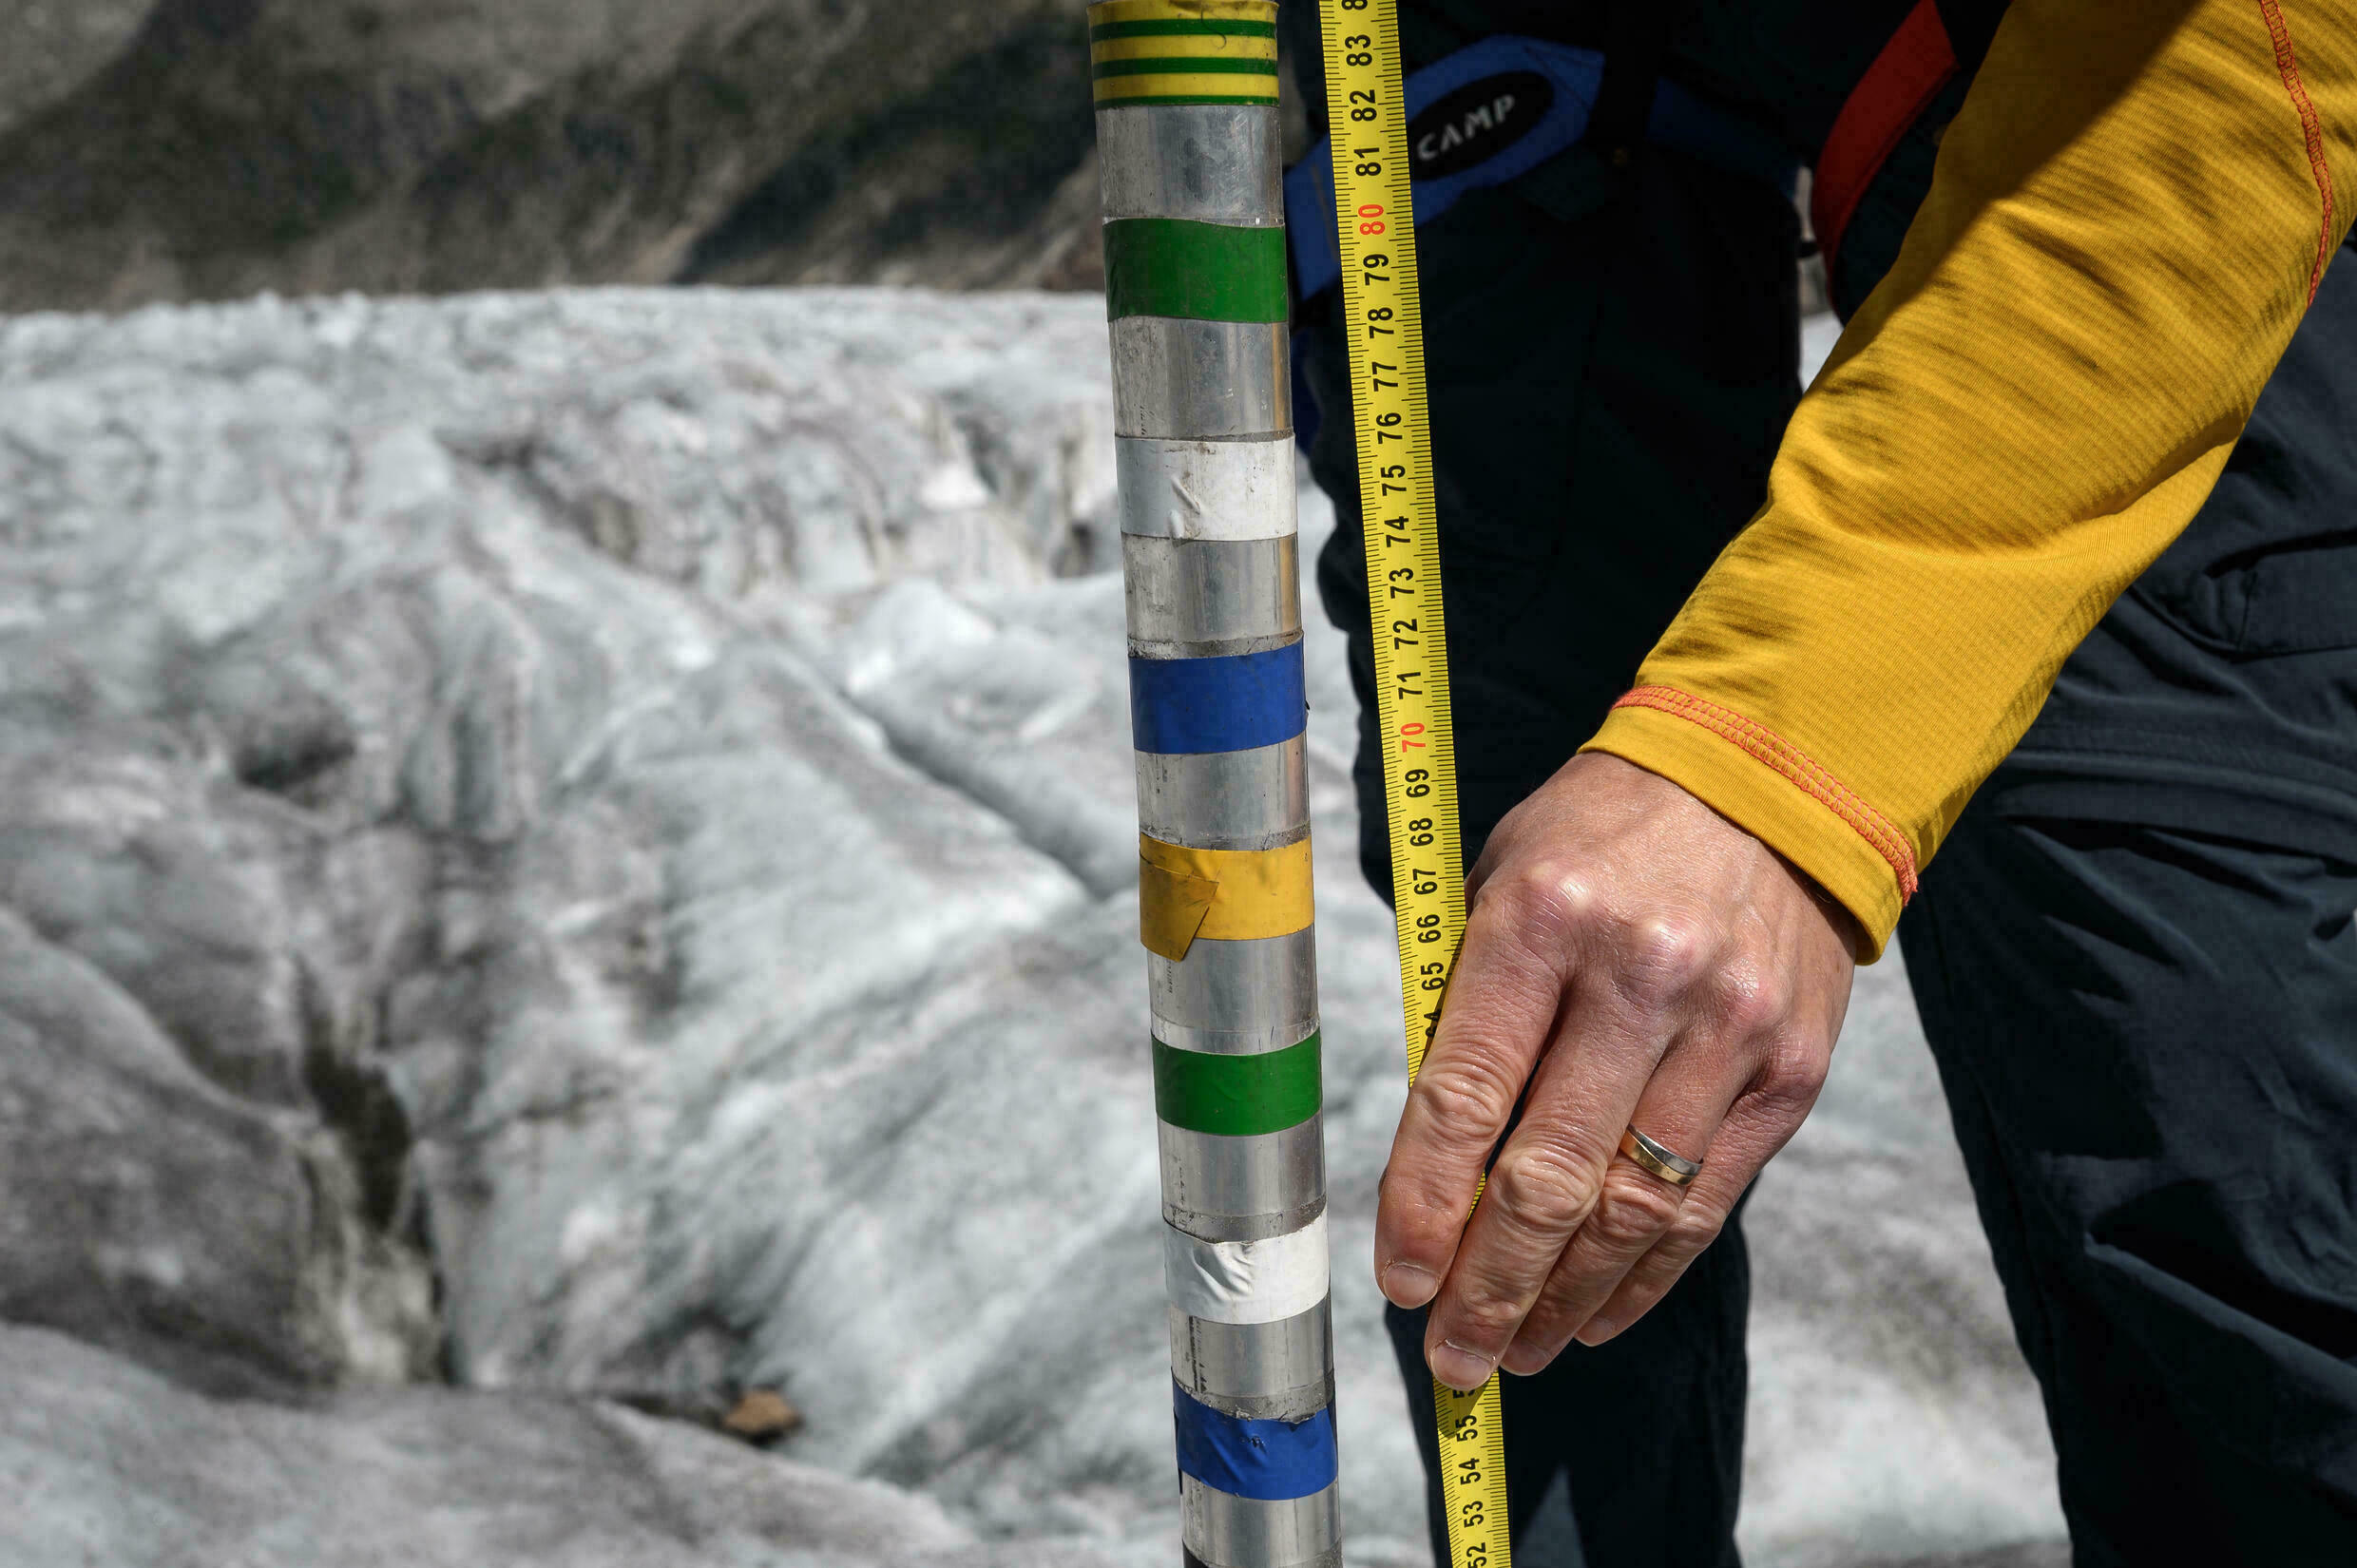 Haas hopes that scientific measurements about the state of glaciers will lead to concrete action